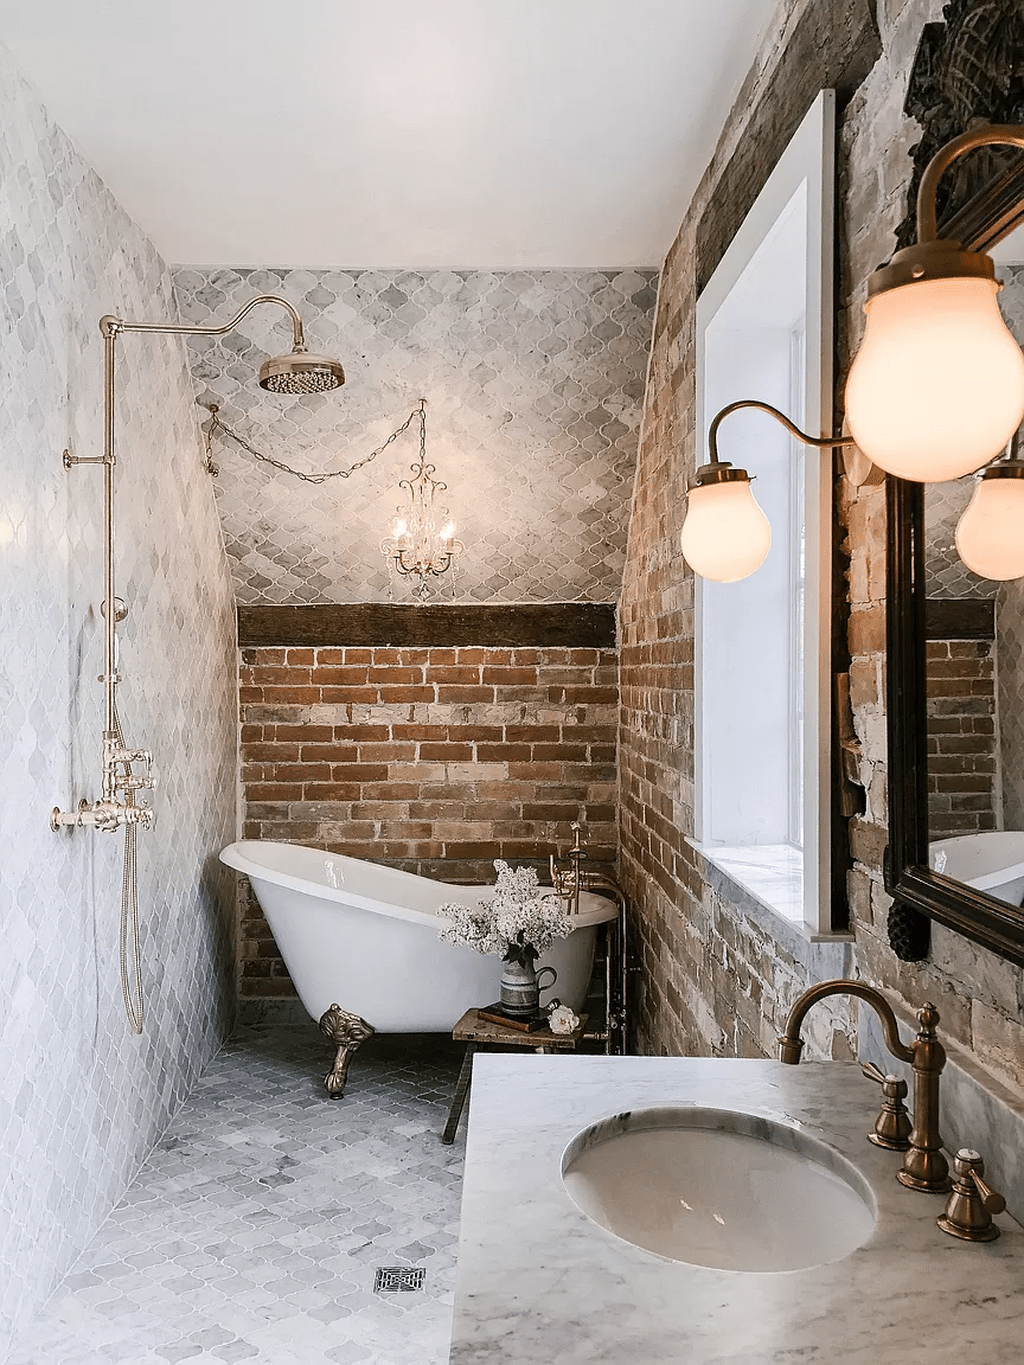 Inspiring Unique Bathroom Ideas That You Should Try 26